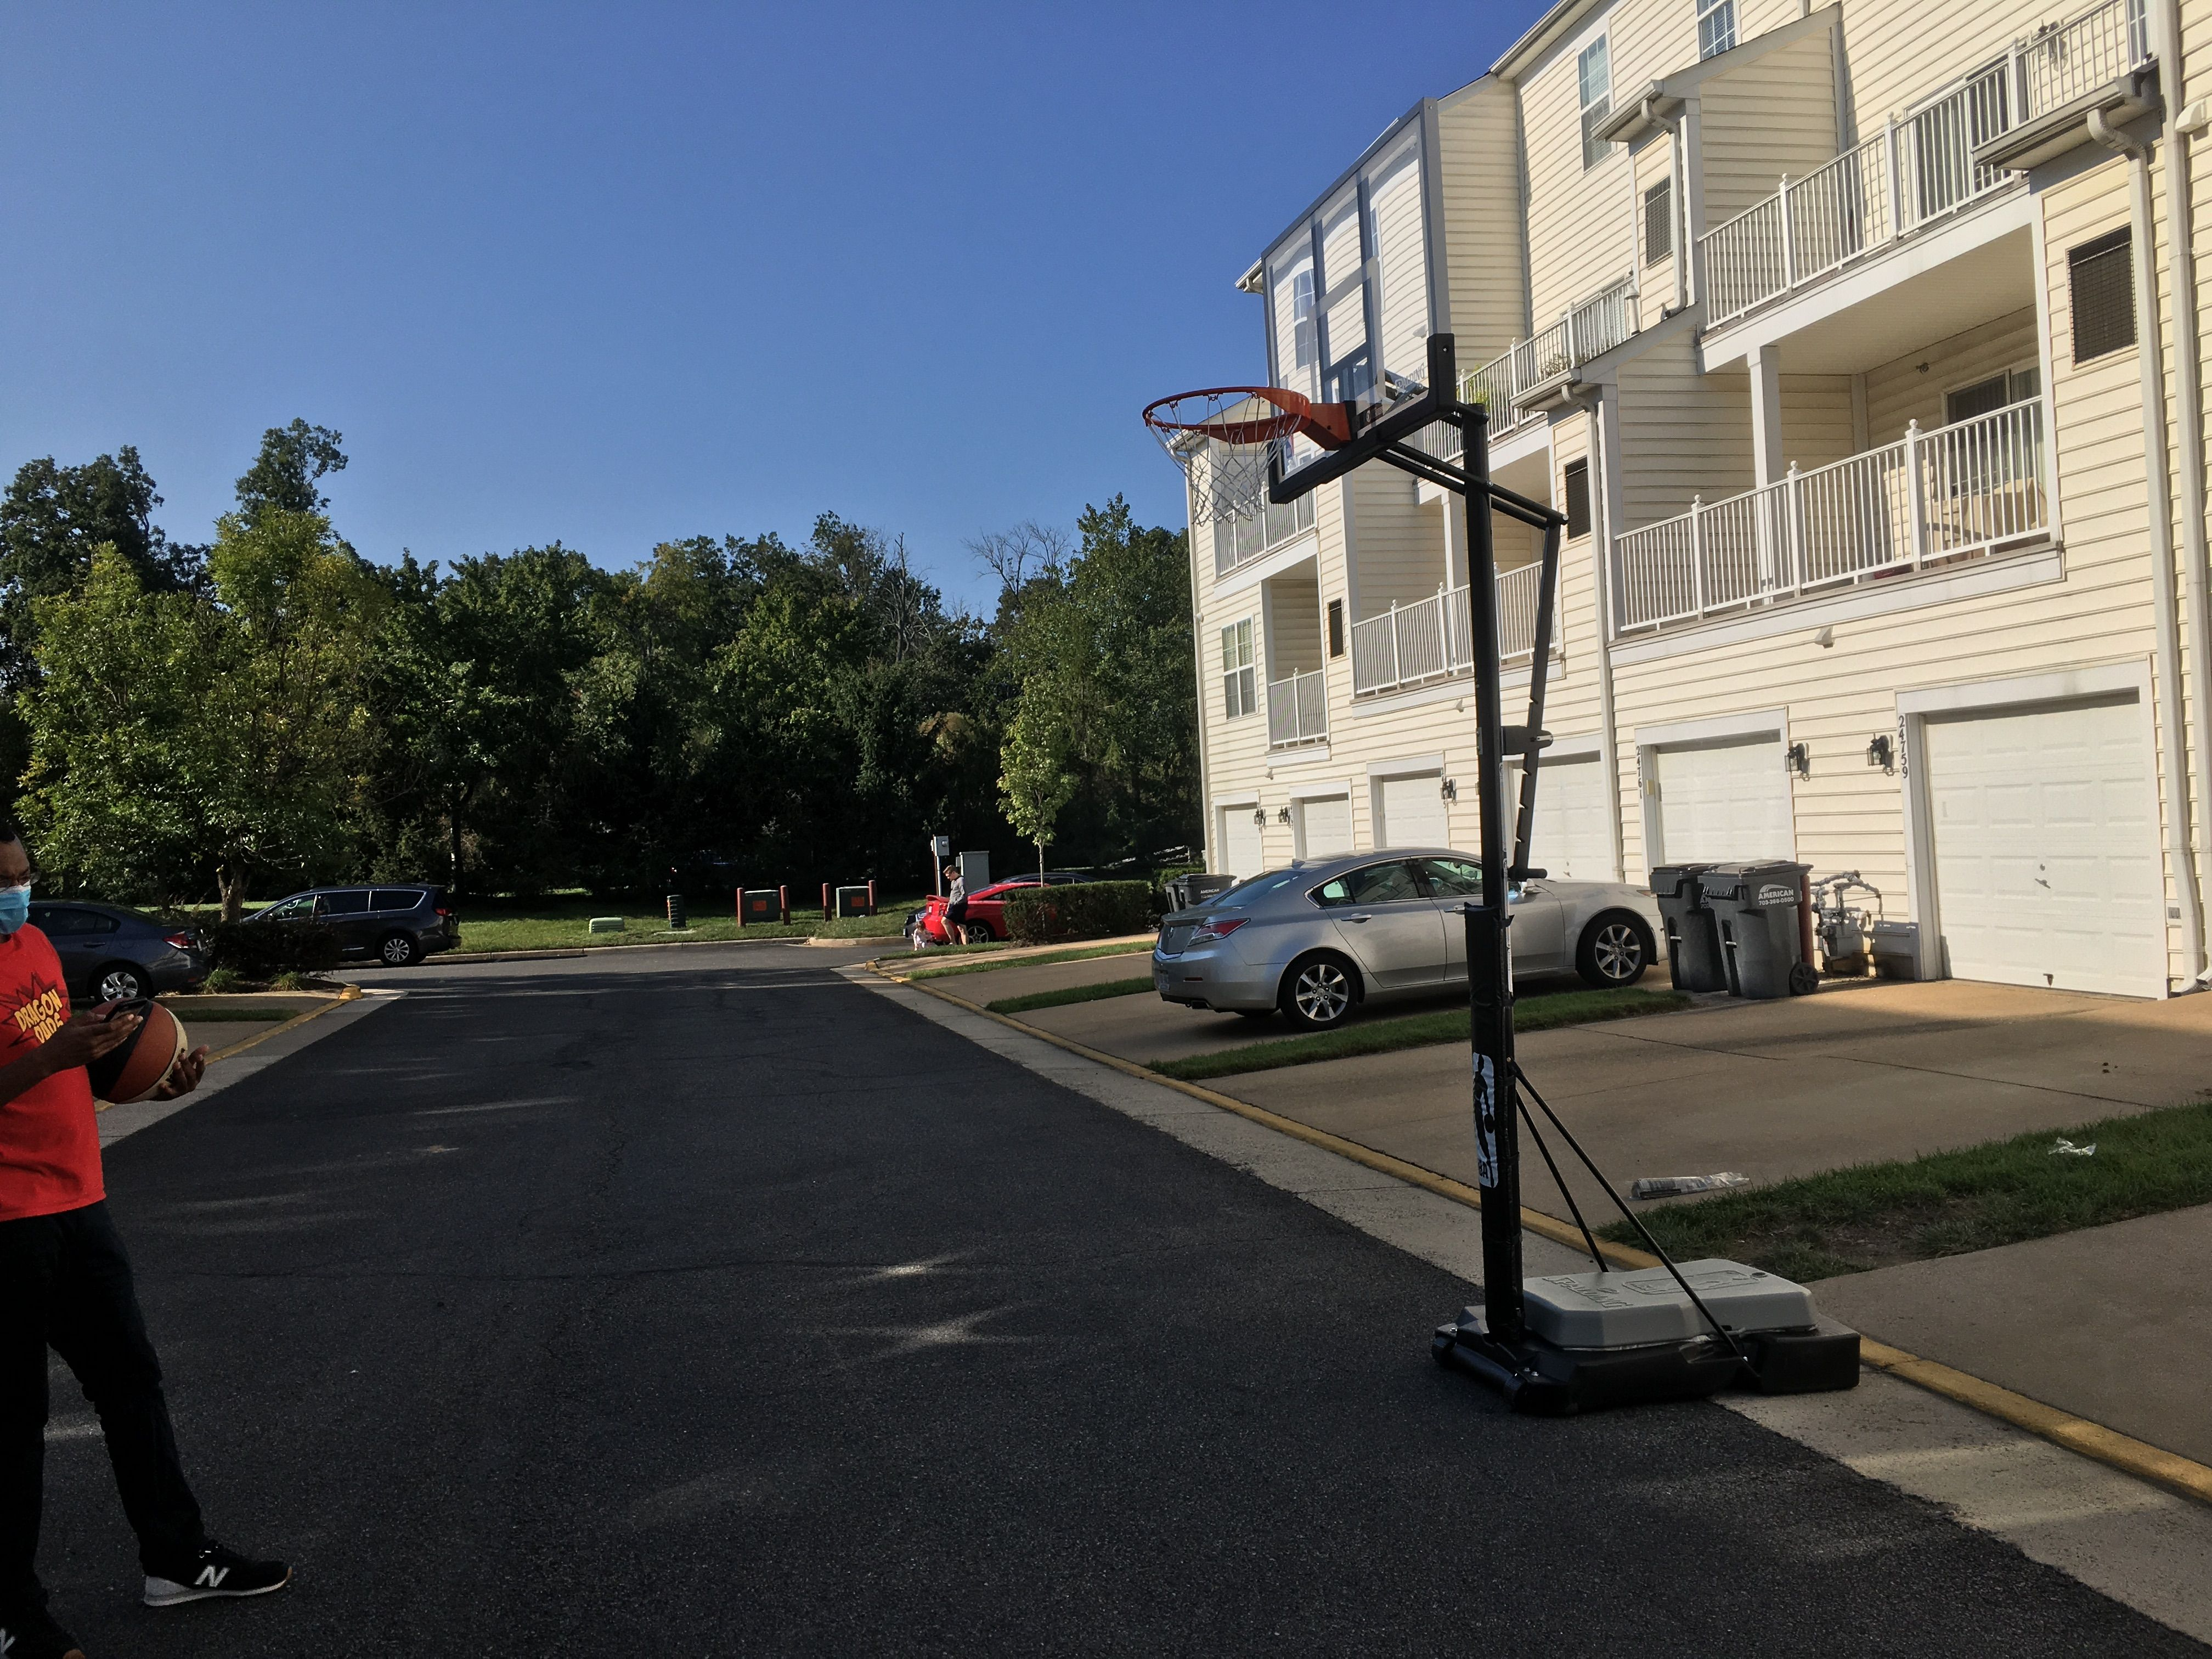 Portable Basketball Hoop Movers In Washington Dc Virginia And Maryland By Furniture Experts Movers Lexington Park Leesburg Virginia Fort Belvoir